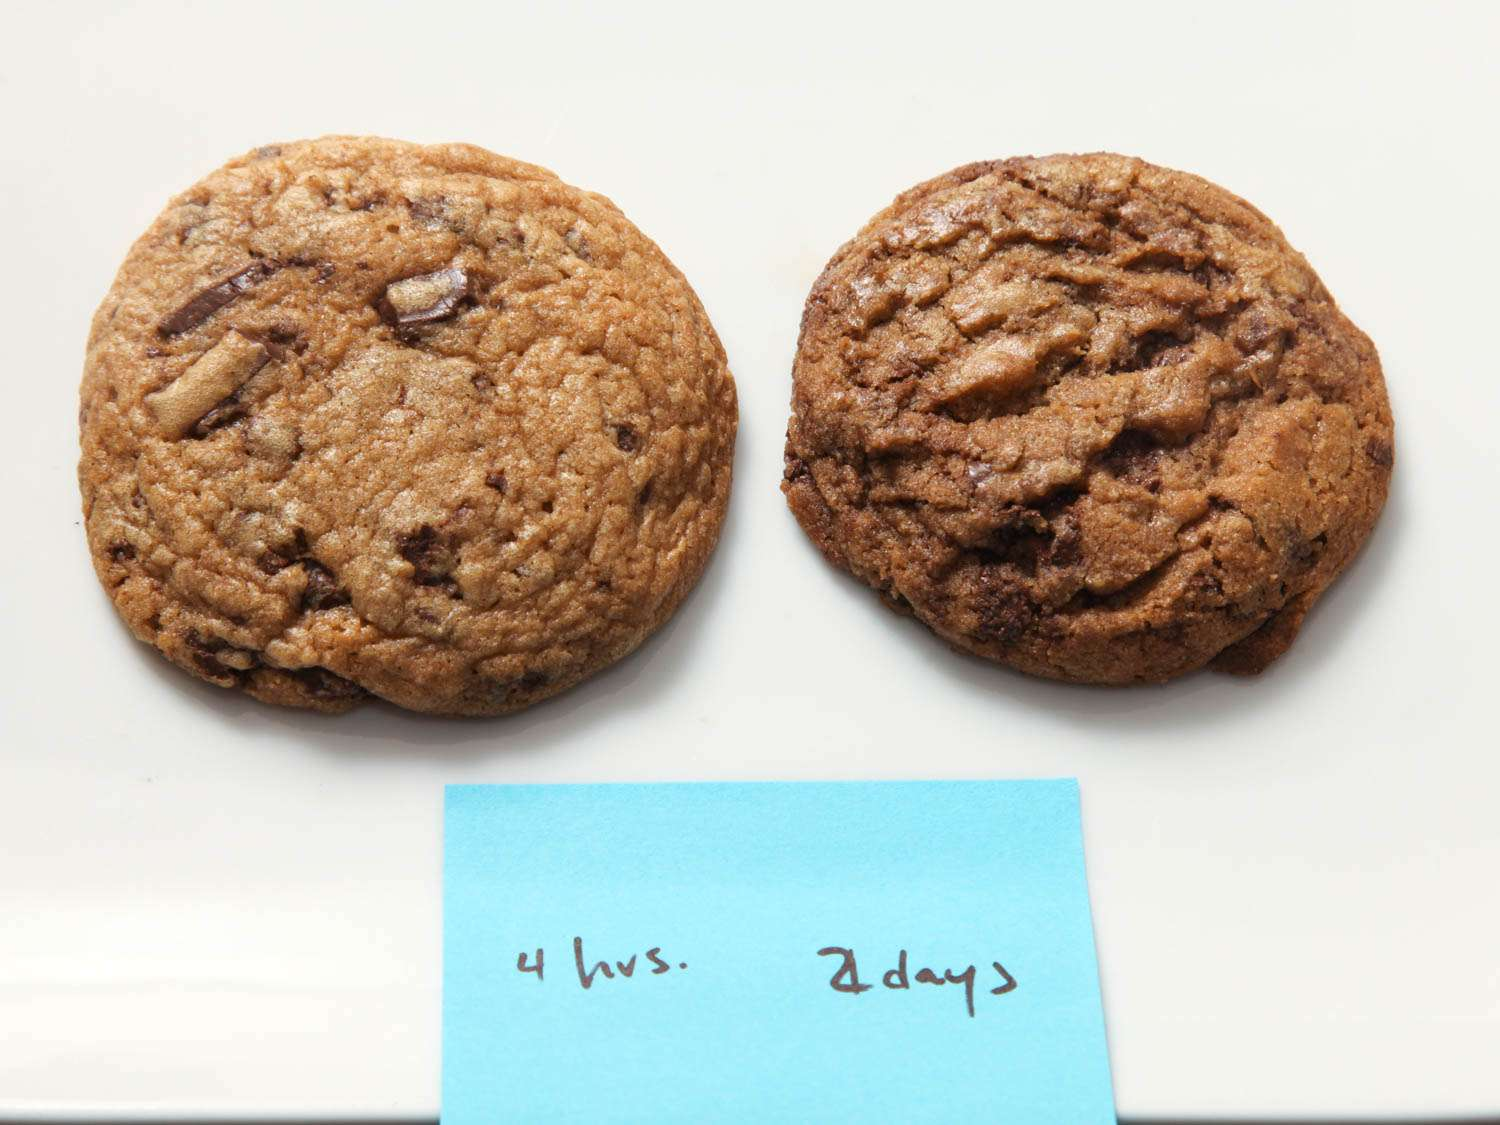 Side-by-side photograph showing one chocolate chip cookie made after dough rested for 4 hours (left) and one cookie made after dough rested for 2 days (right).